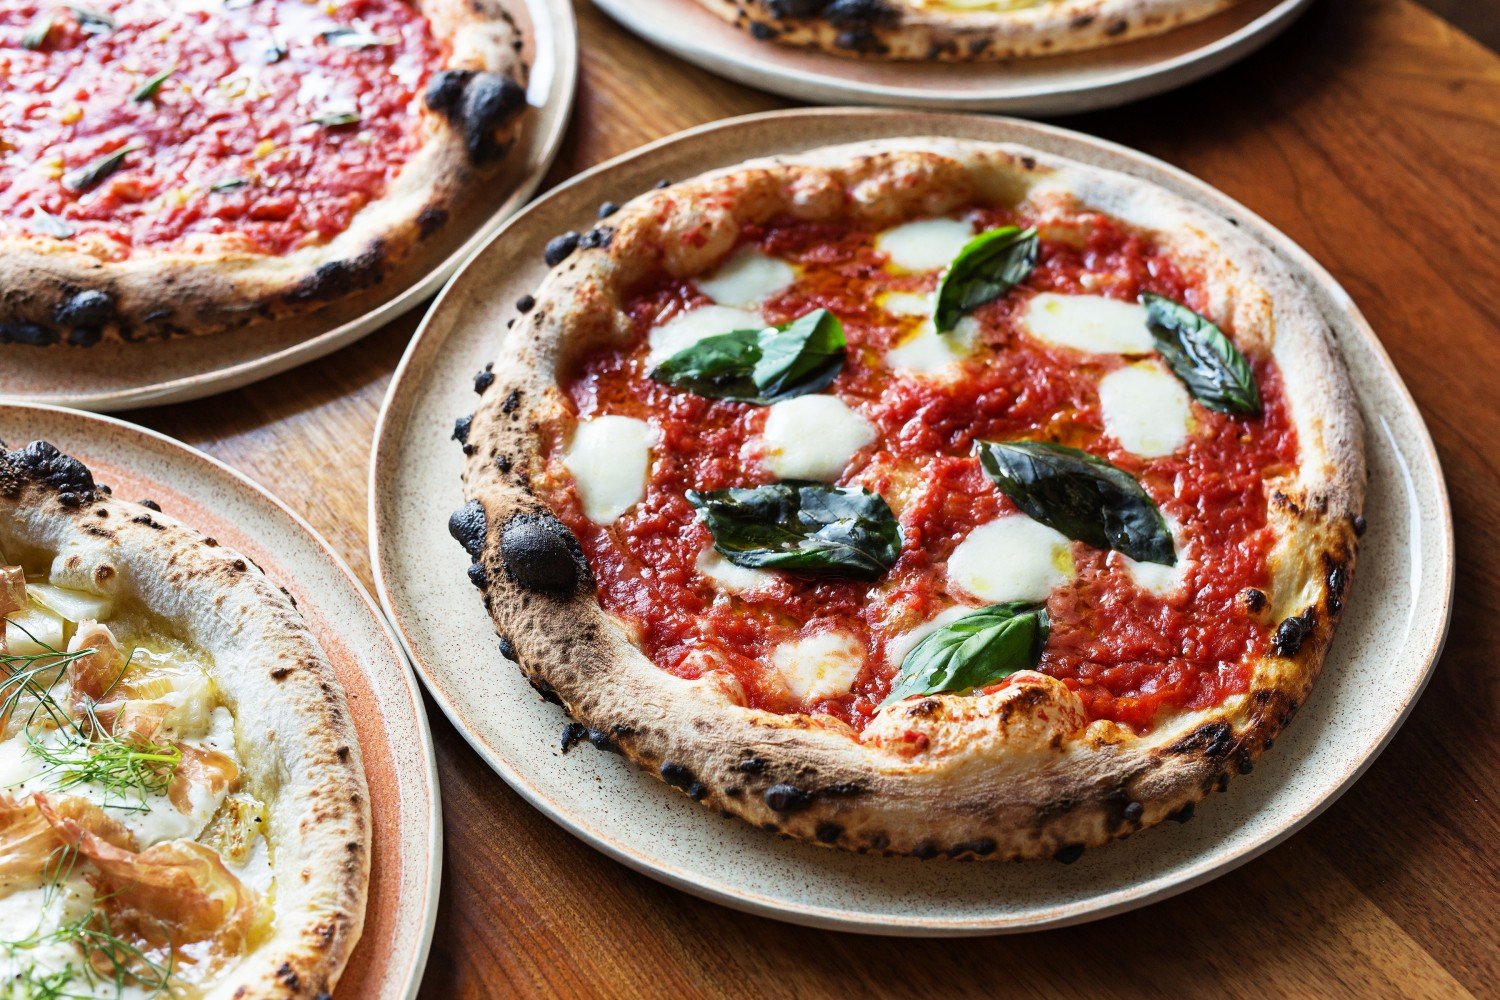 Pizzas by Inferno Pizzeria Napoletana. (Courtesy of Inferno Pizzeria Napoletana)